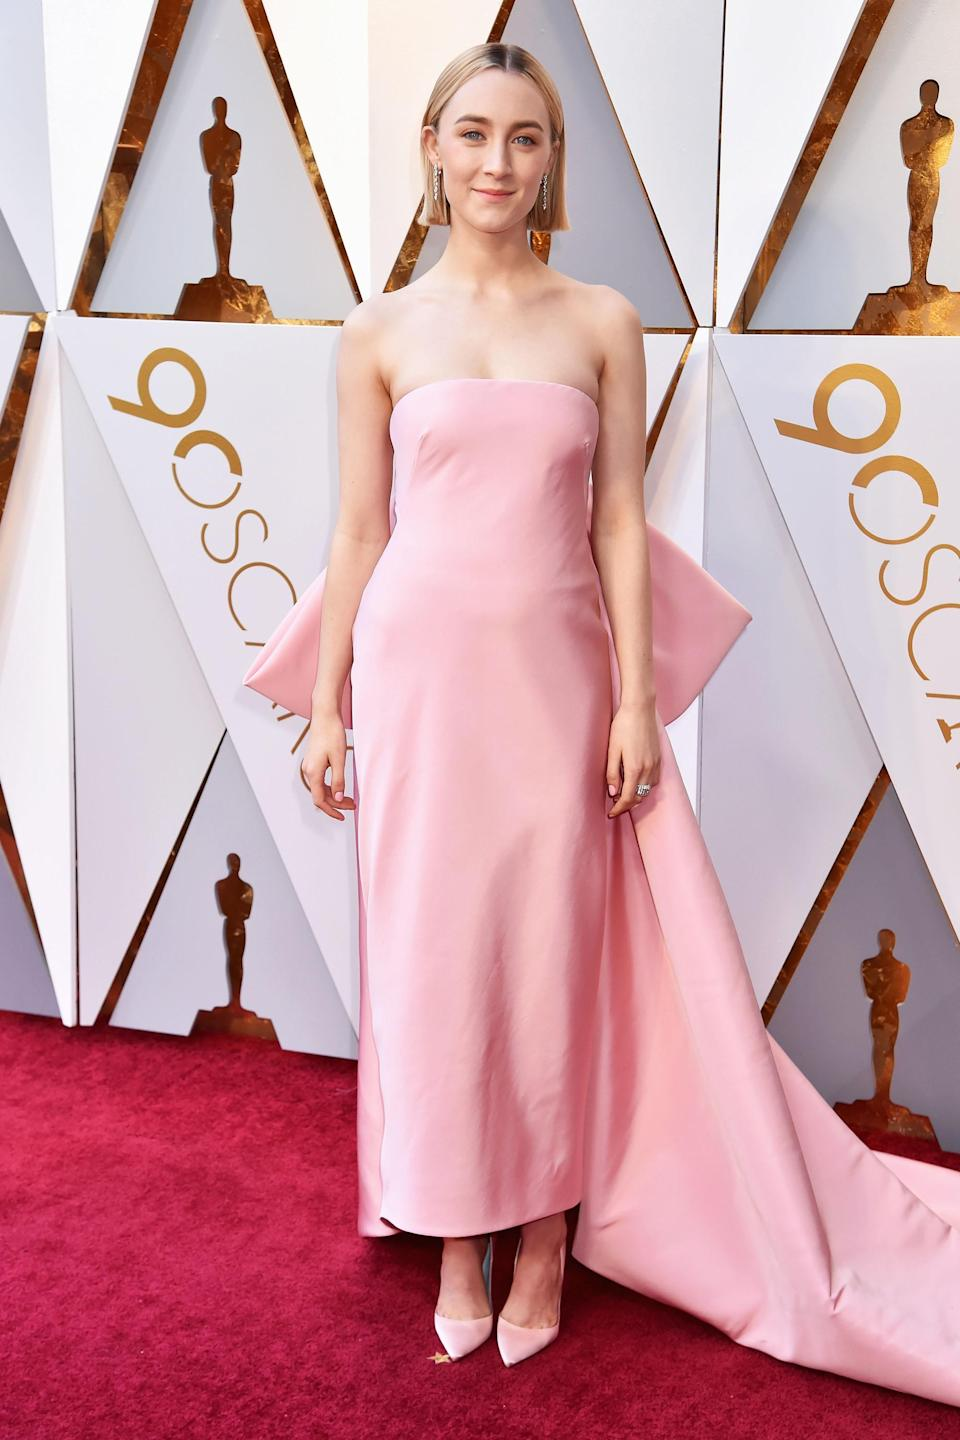 """<h2>Saoirse Ronan, 2018</h2><br>A long way from dress shopping at a Sacramento thrift shop! This bubblegum pink frock on <em>Lady Bird</em> lead actress Saoirse Ronan is one for the record books.<br><br><em>Saoirse Ronan in Calvin Klein By Appointment.</em><span class=""""copyright"""">Photo: Jeff Kravitz/FilmMagic/Getty Images. </span>"""